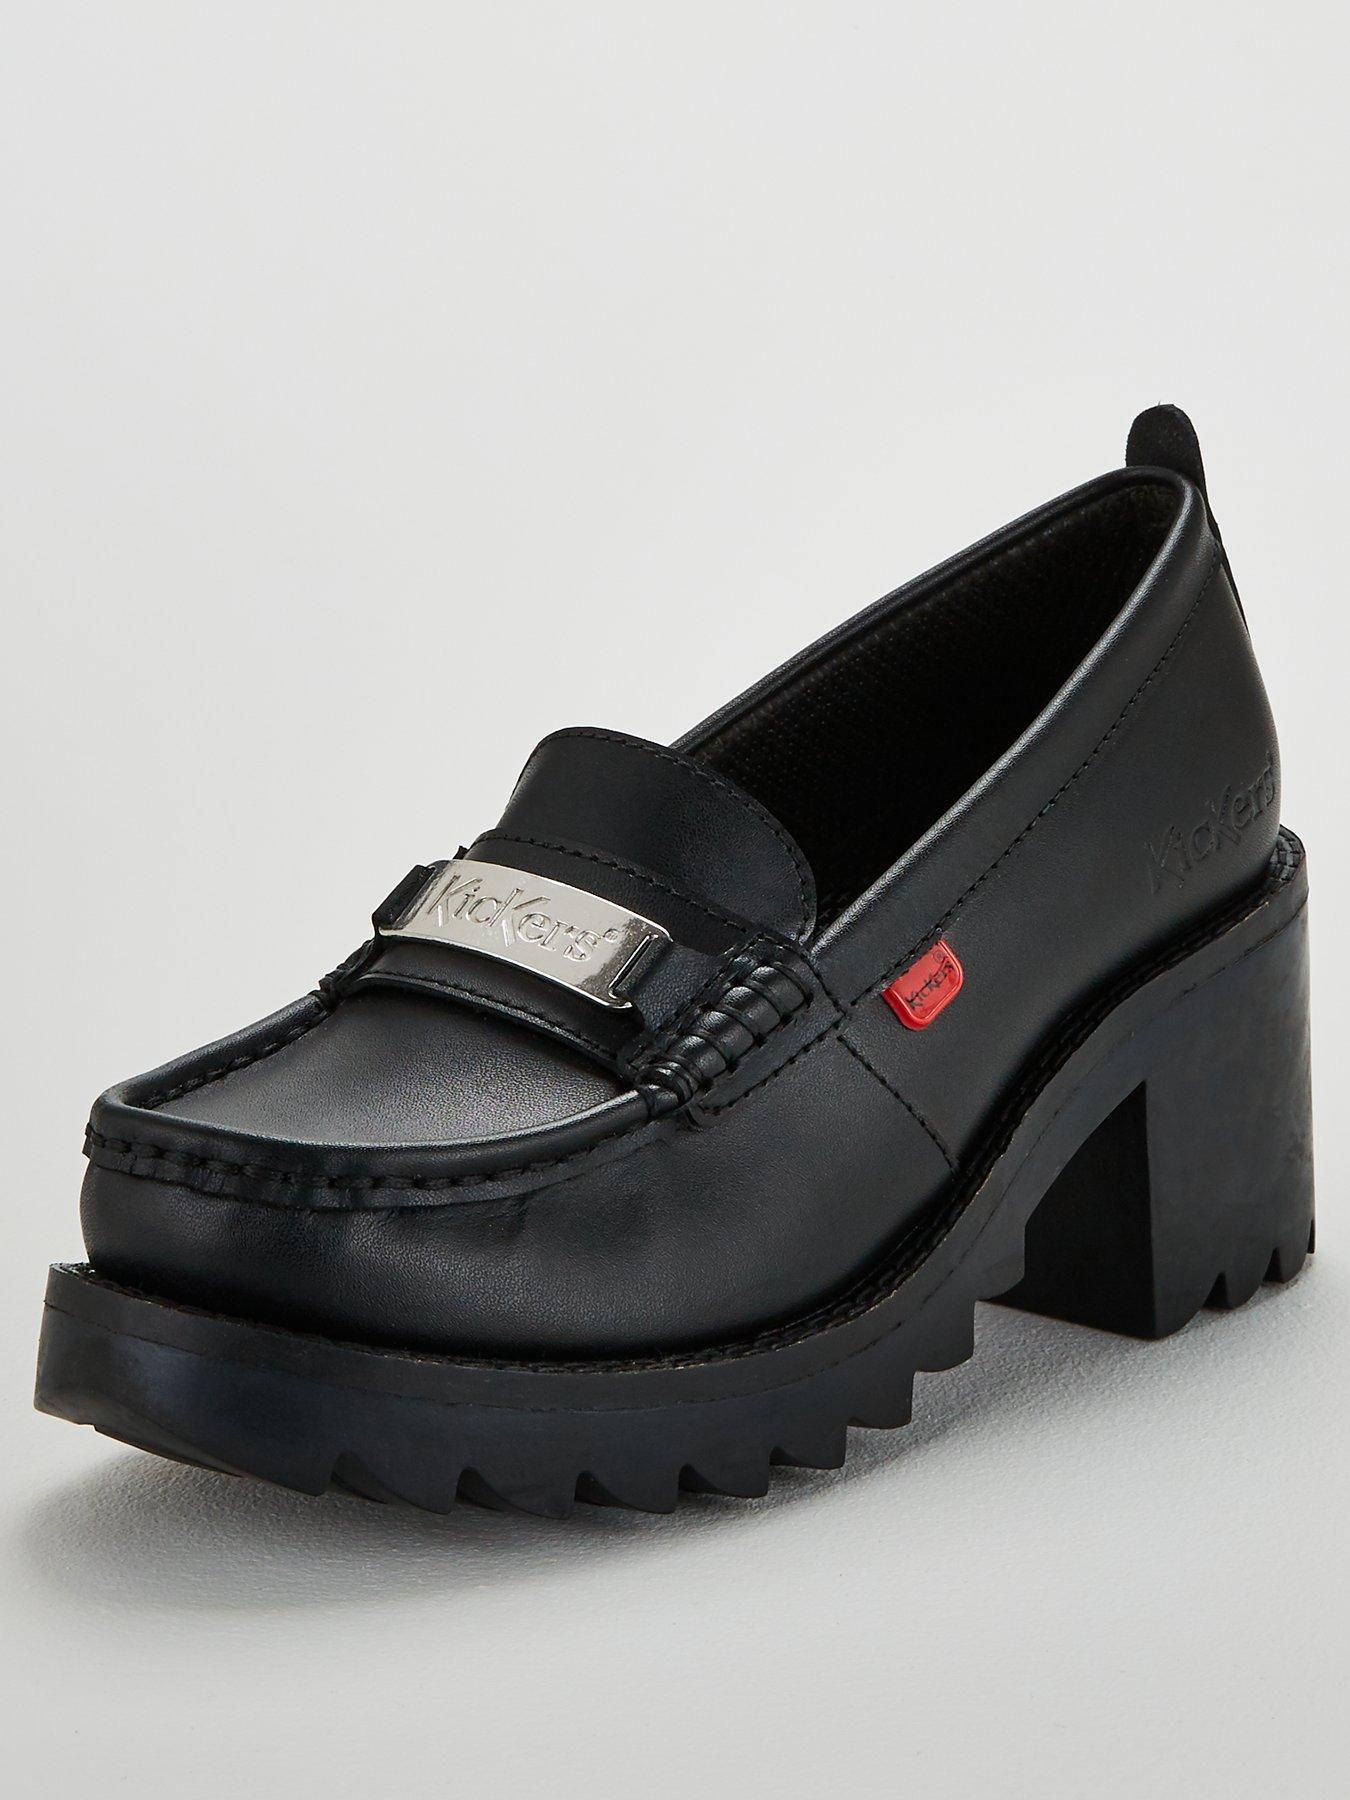 Kickers Klio Y Loafer Heeled Shoes Black | Black shoes